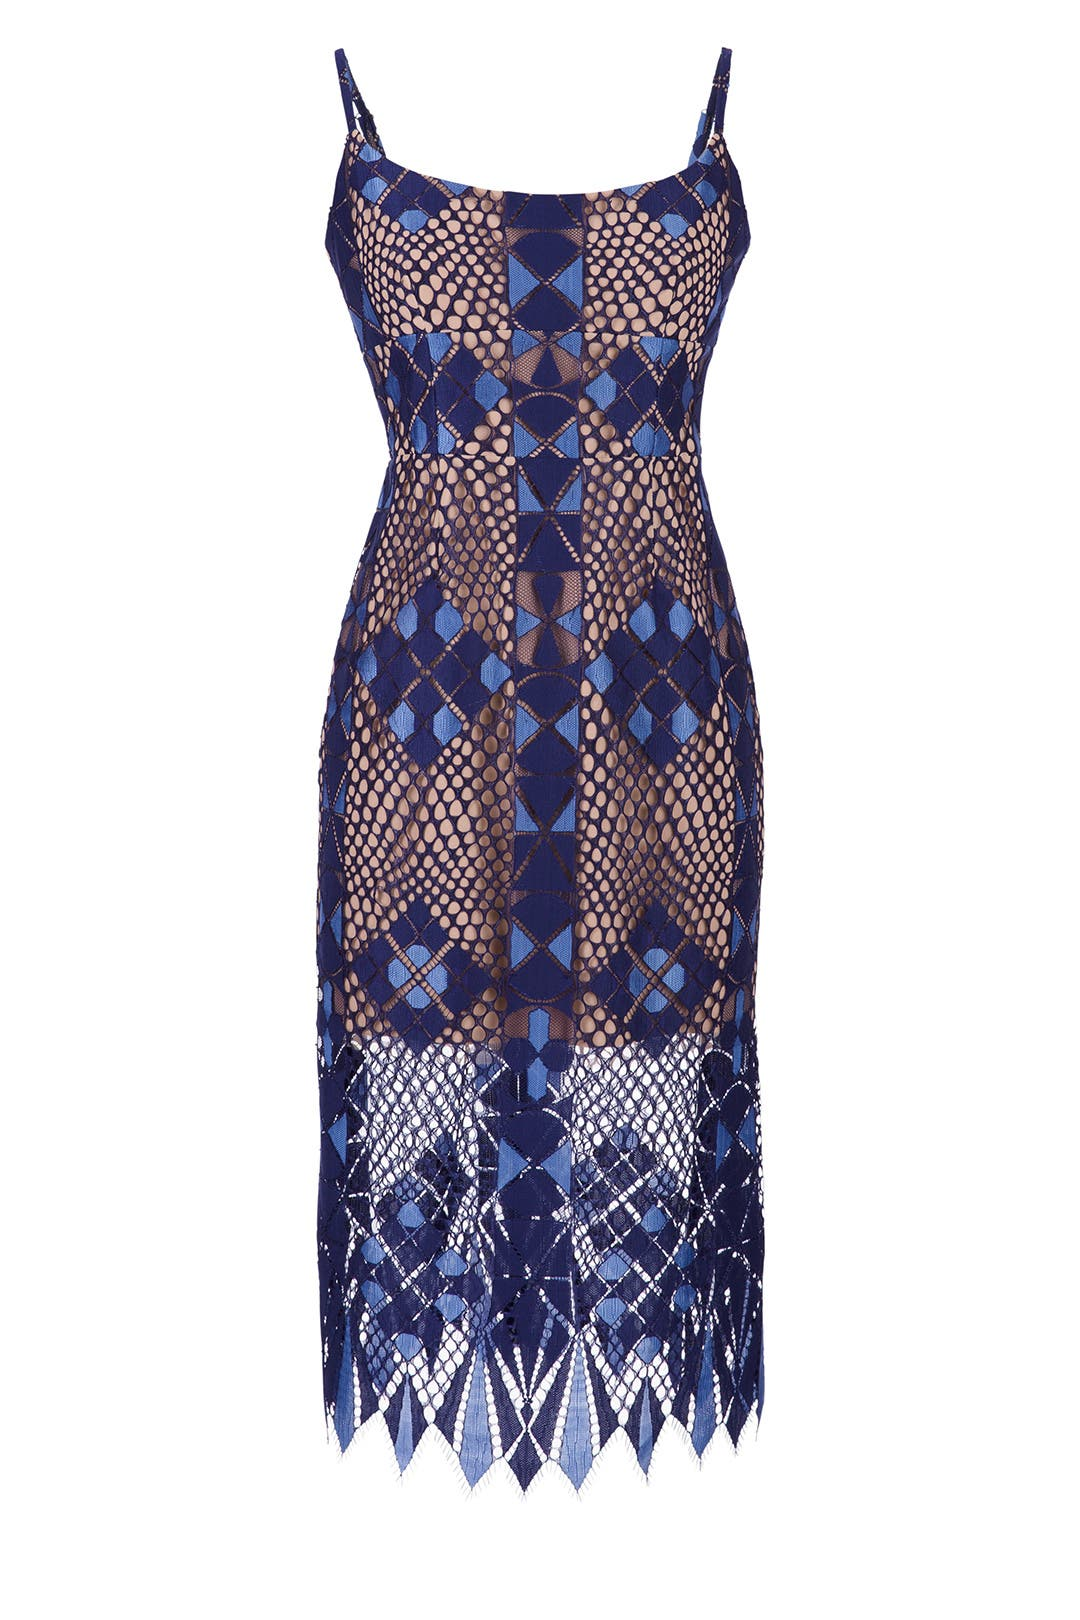 Alese Geometric Lace Dress by BCBGMAXAZRIA for $75 - $85 | Rent the ...